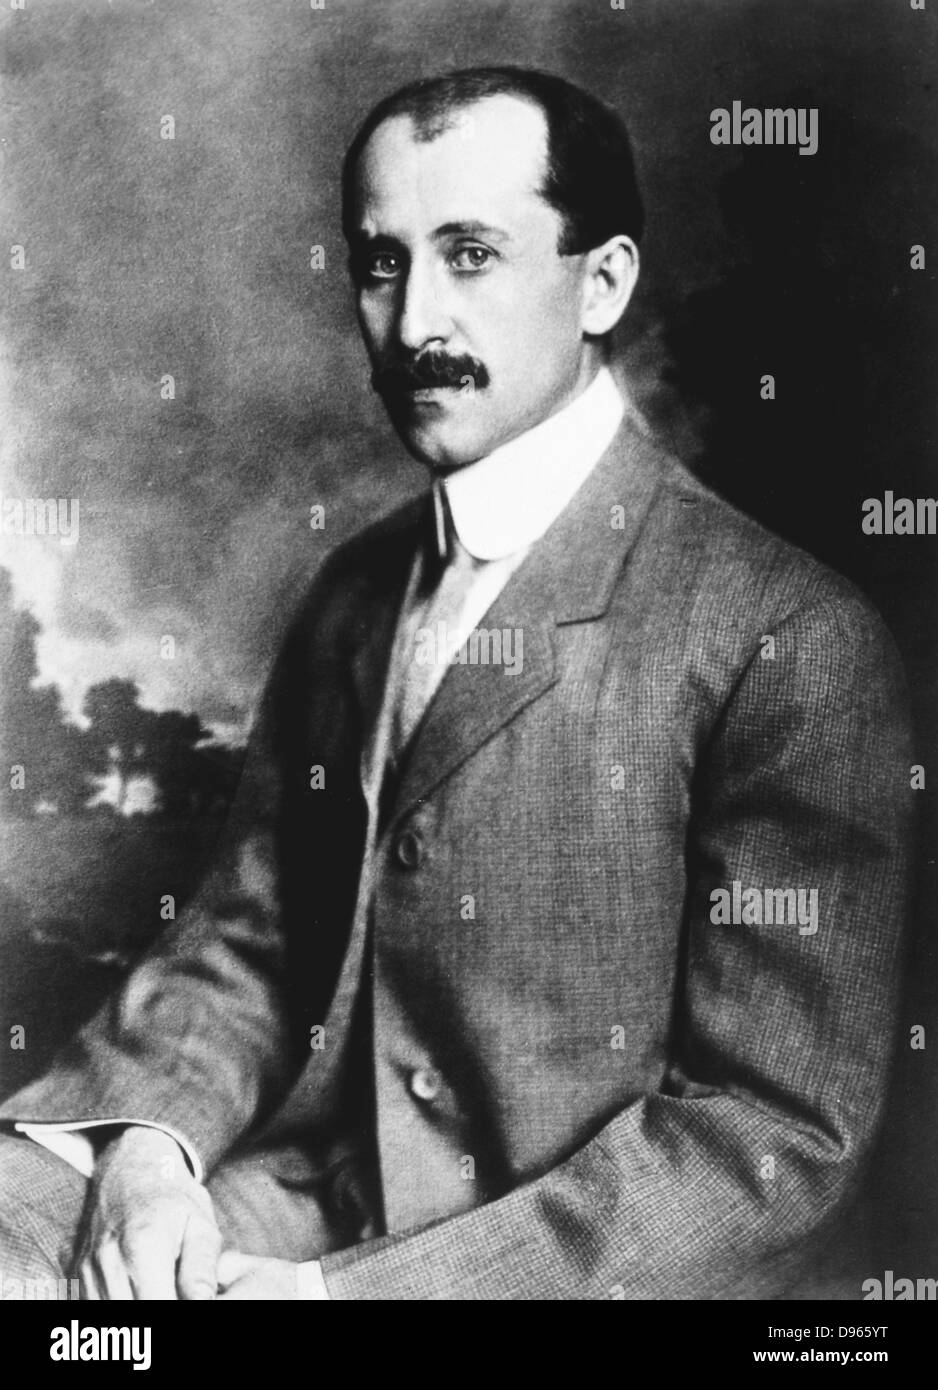 Orville Wright (1871-1948) American aeronautical pioneer,  the  younger of the Wright brothers. Photograph. - Stock Image